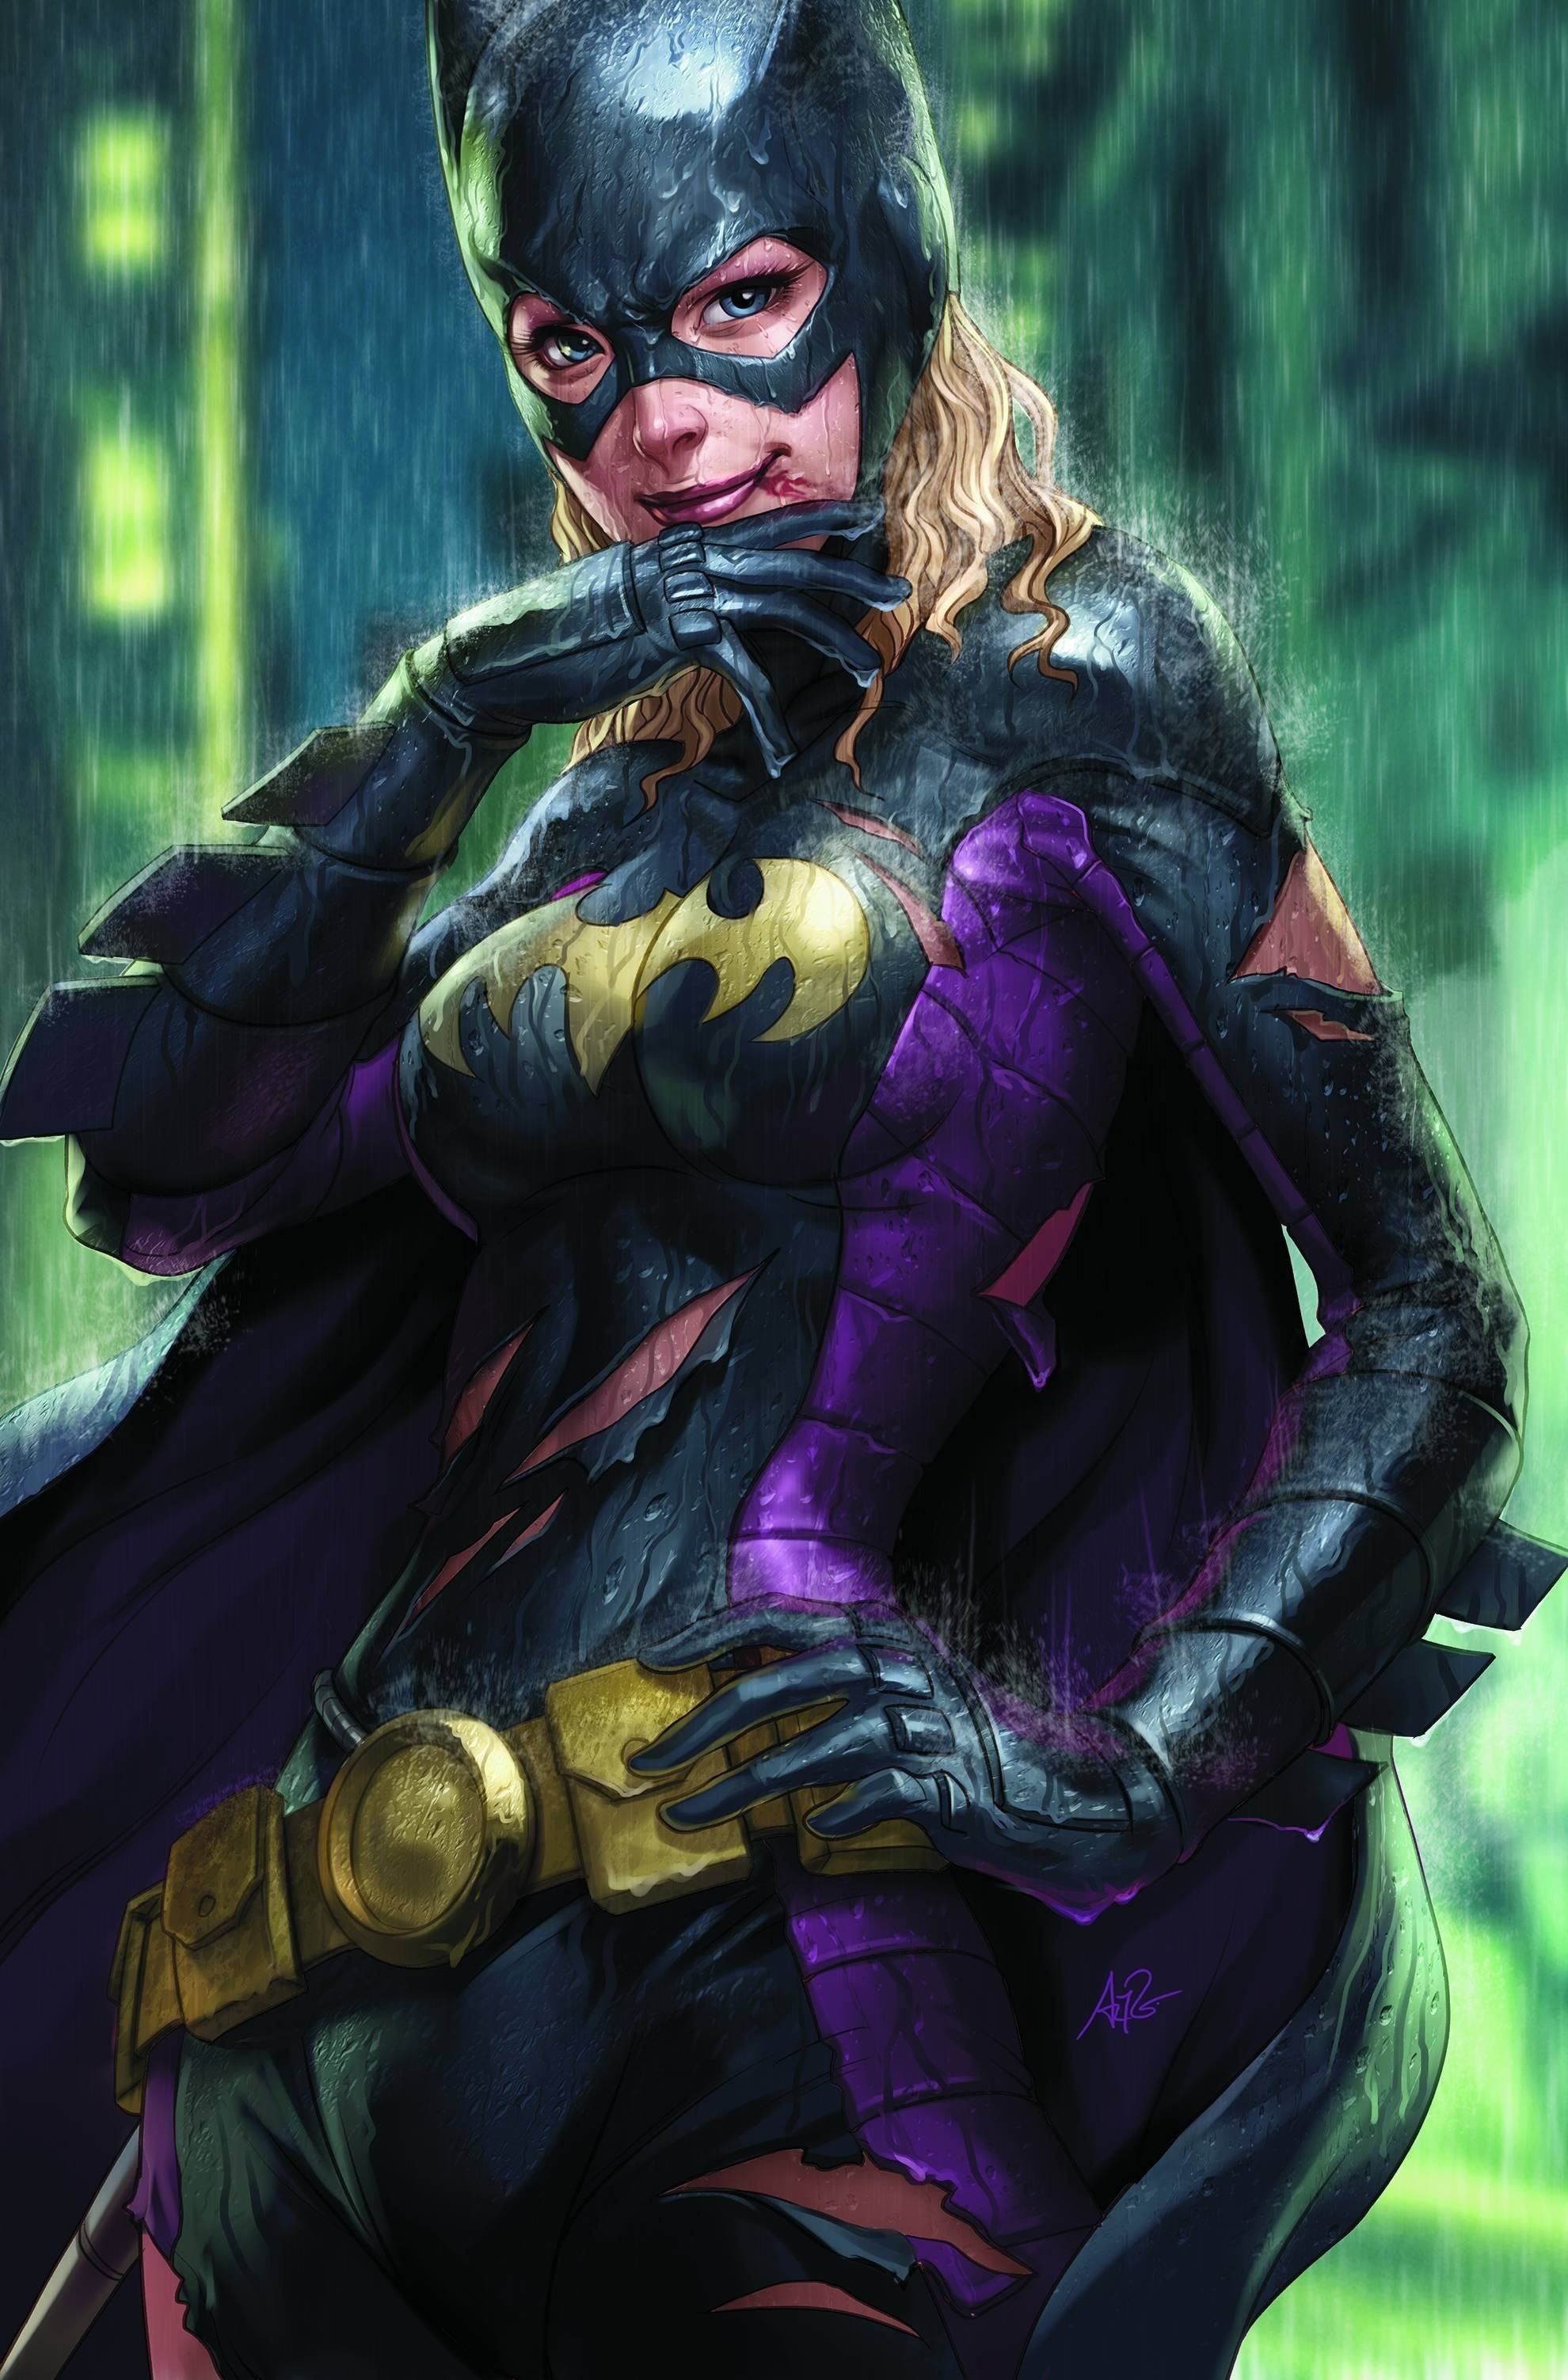 1980x3006 dc comics superheroes wet batgirl bodysuit artwork artgerm   wallpaper